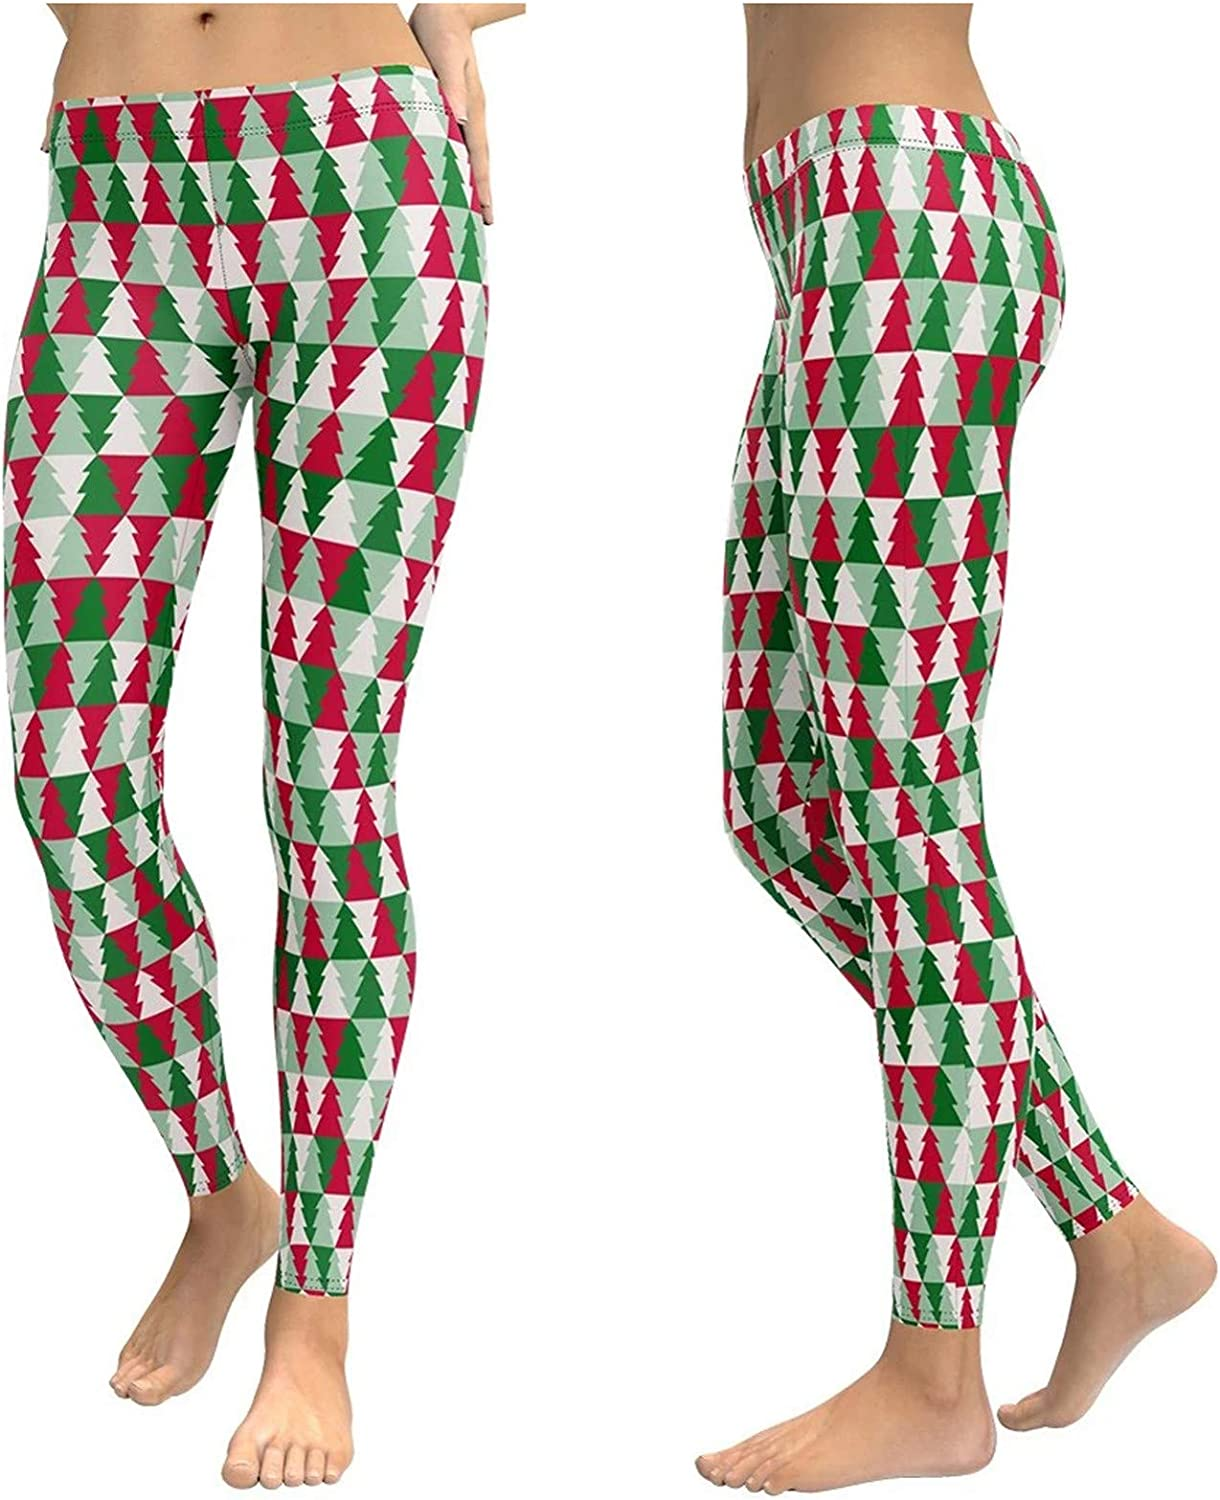 UpdateClassic Womens Christmas Leggings Ugly Legging for Yoga Active Workout Xmas Tree Fitness Tight Pants